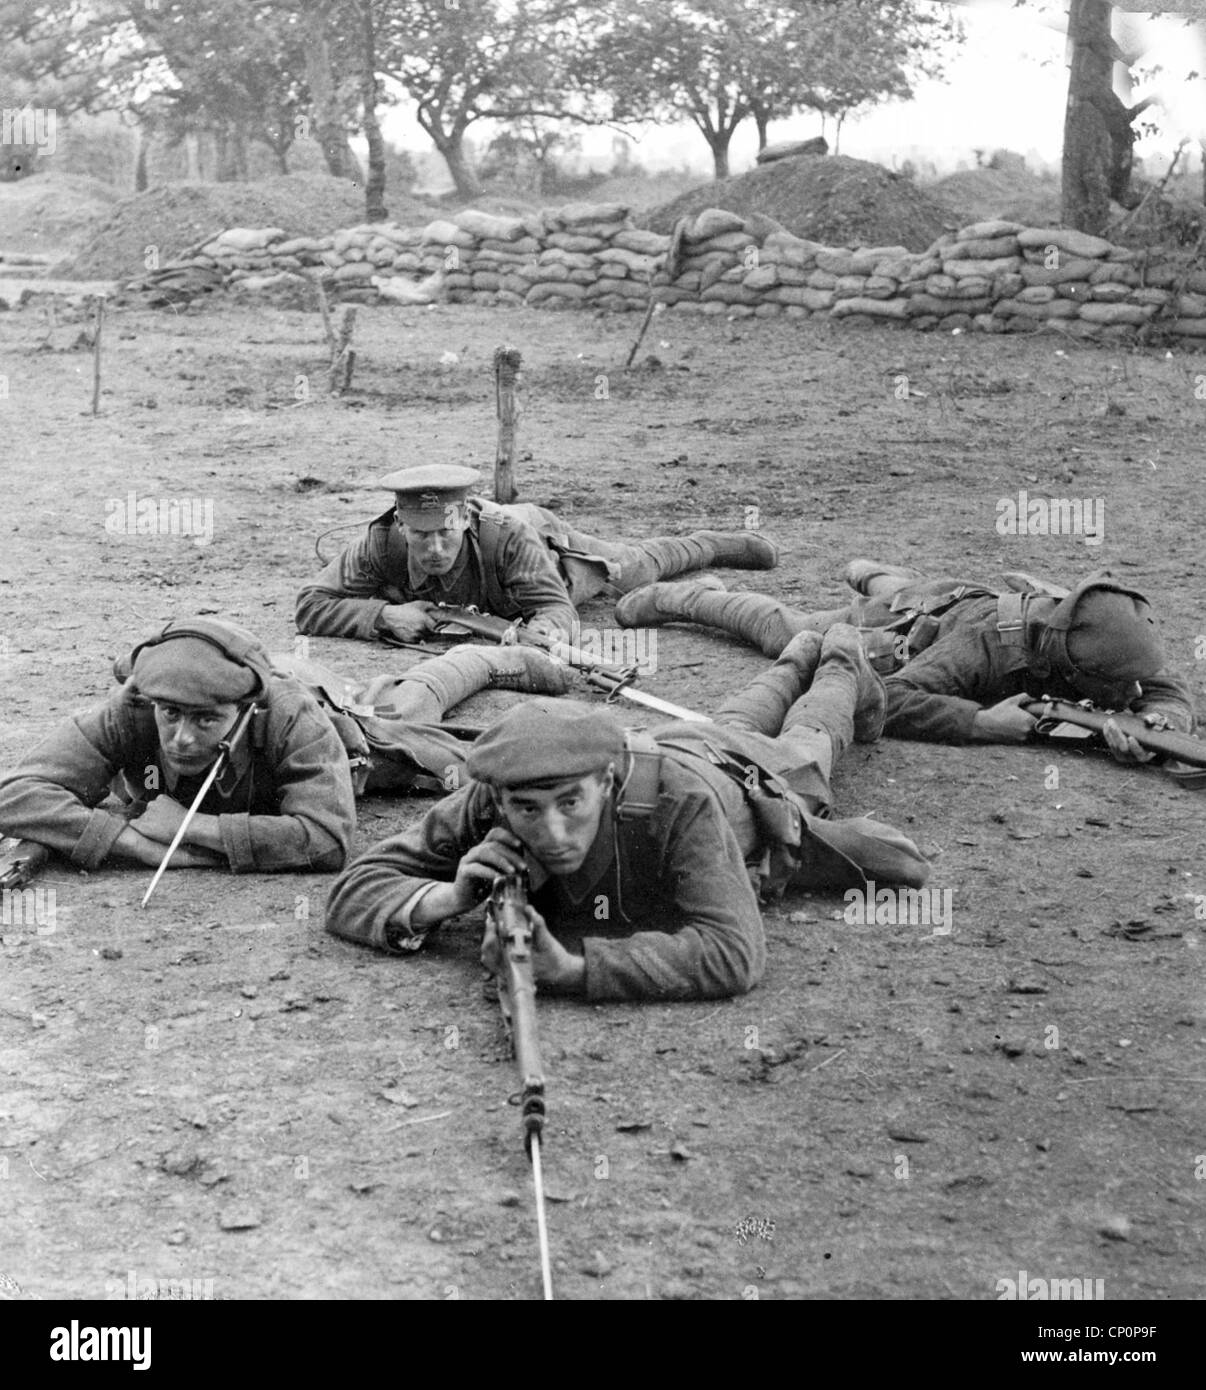 Four soldiers with rifles lying on ground, during World War One - Stock Image